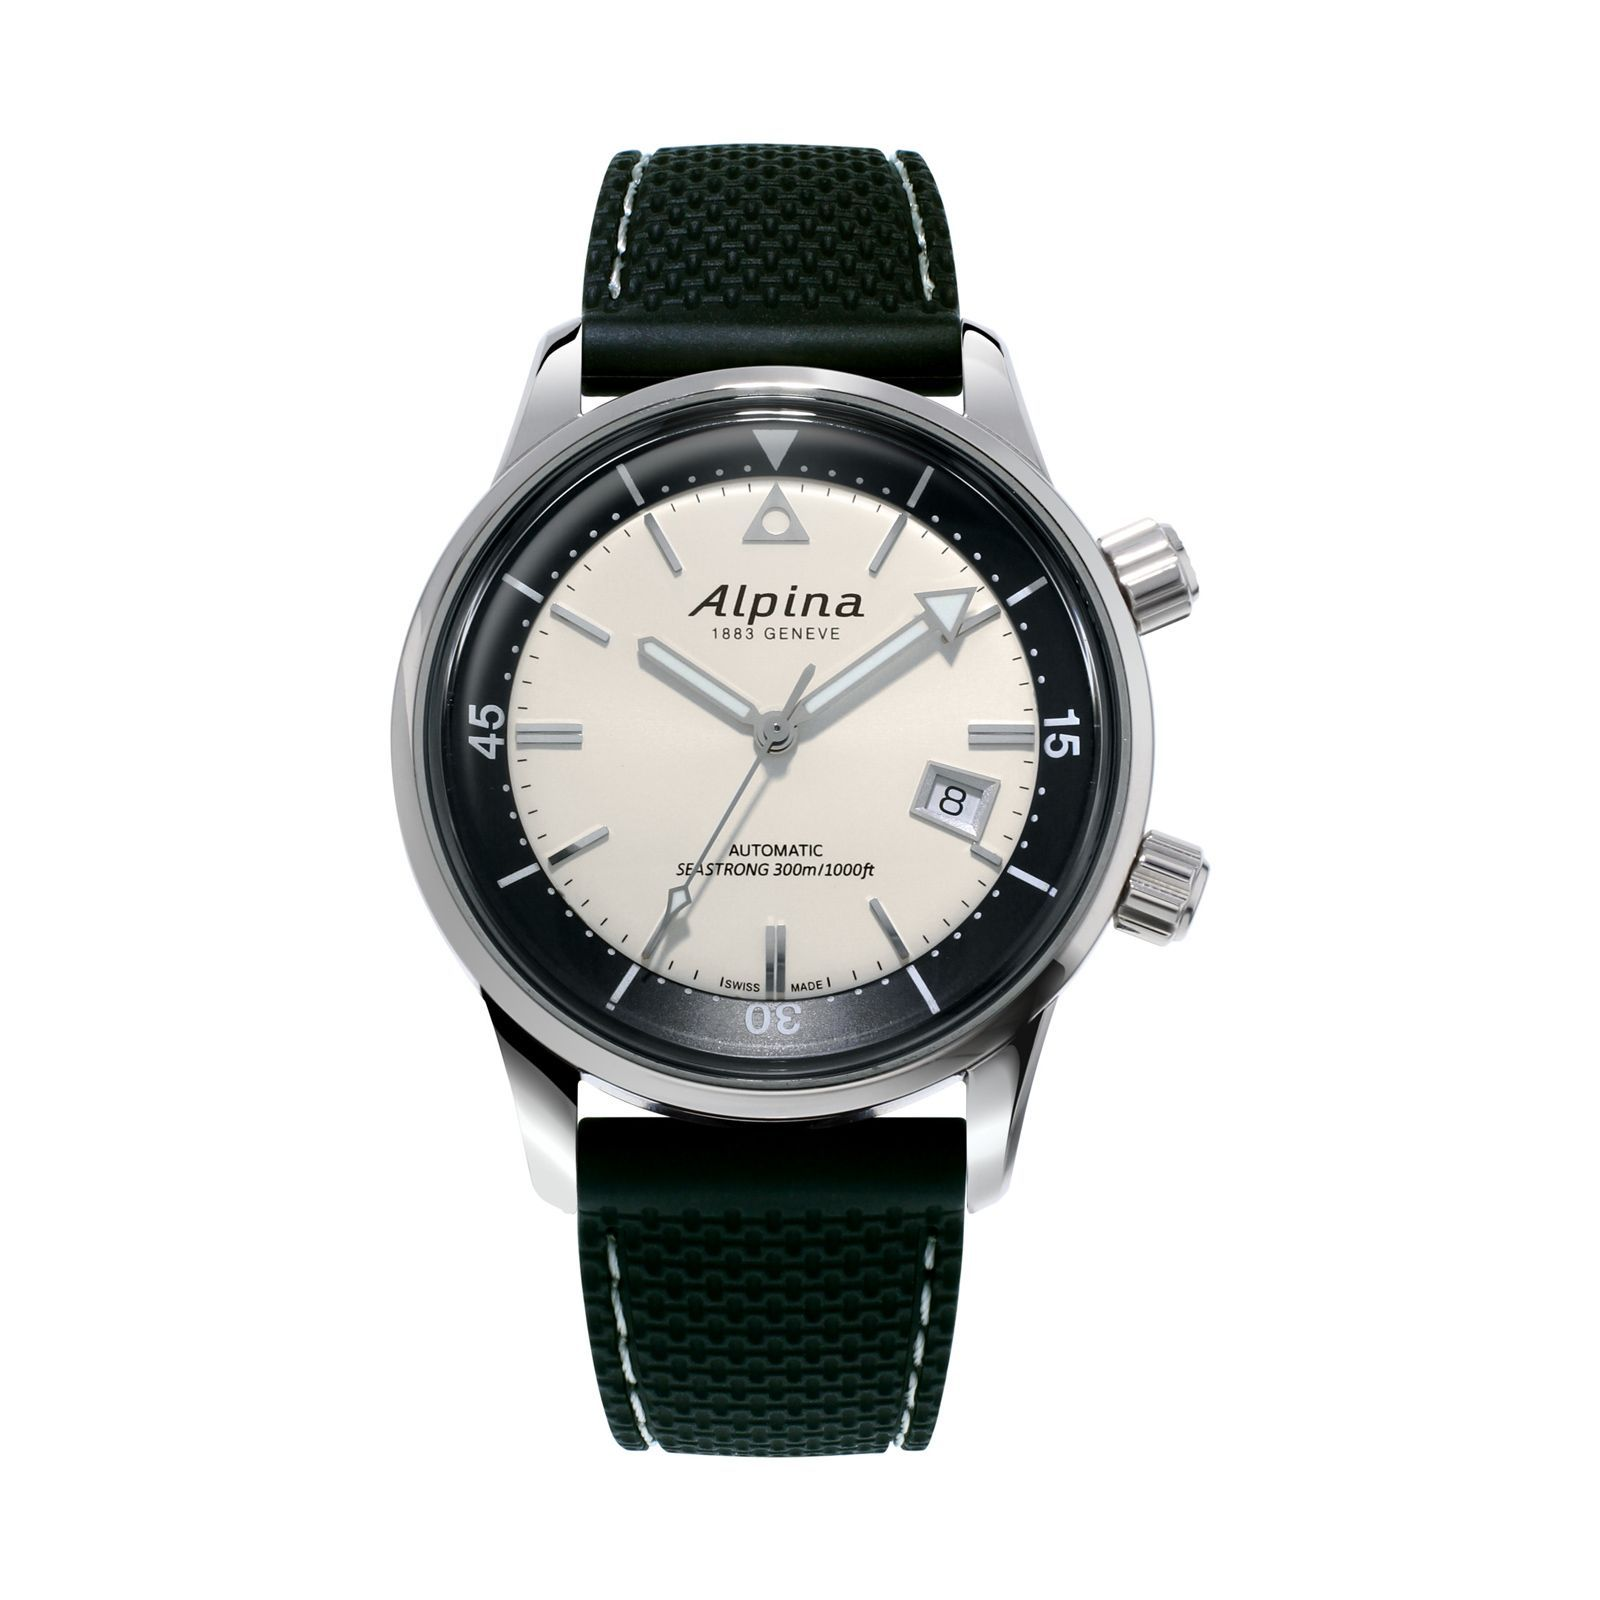 Montre Alpina Seastrong Diver 300 Heritage